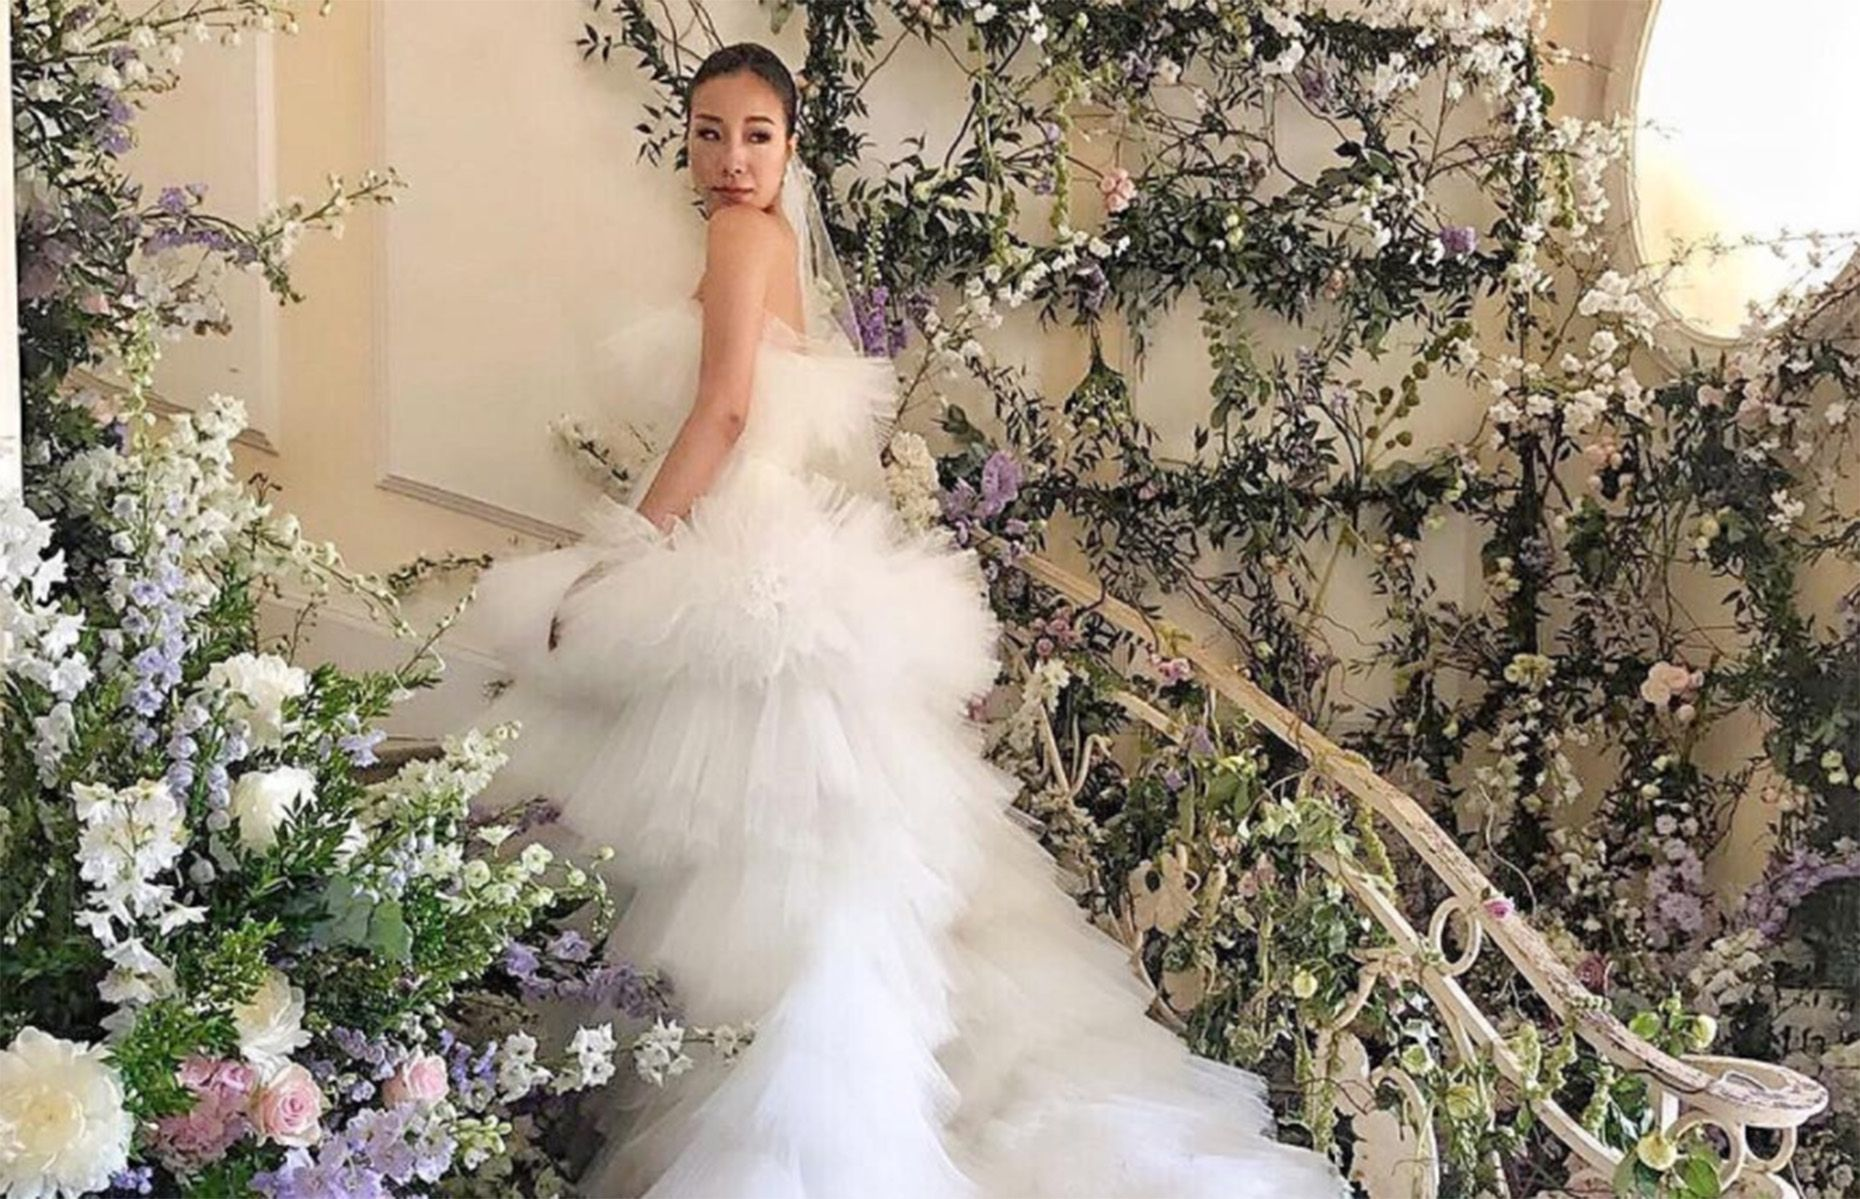 Behold this bride just wore the biggest wedding dress a major